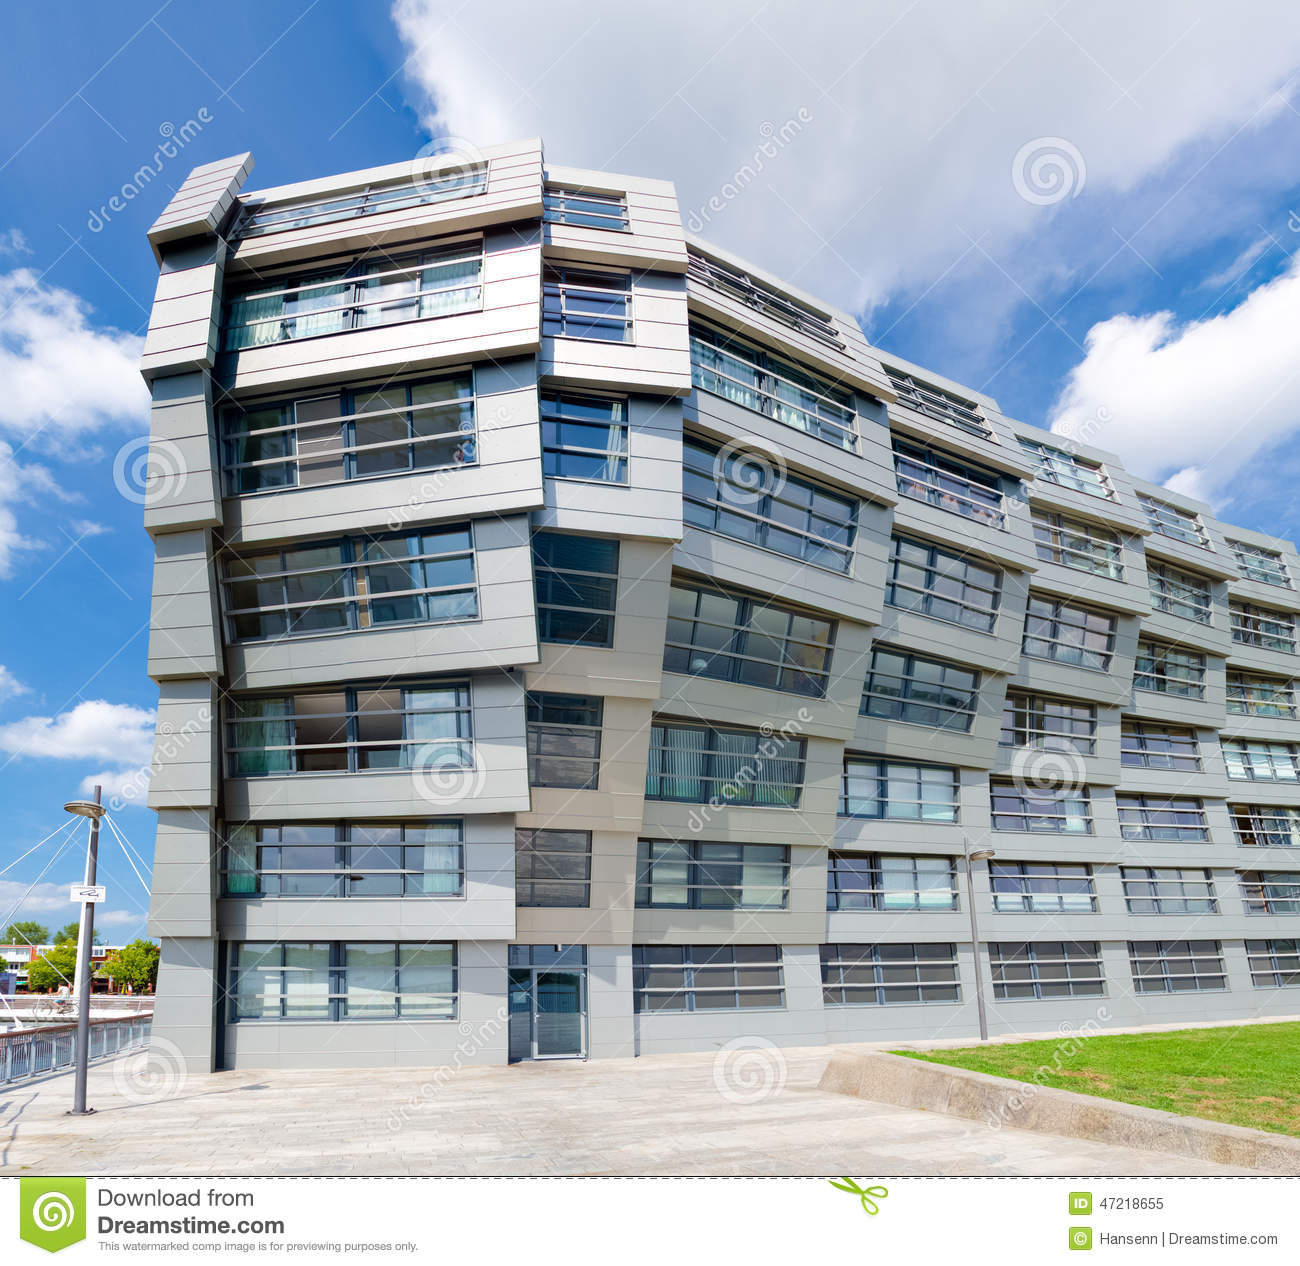 Appartements modernes image ditorial image 47218655 for Appartement exterieur